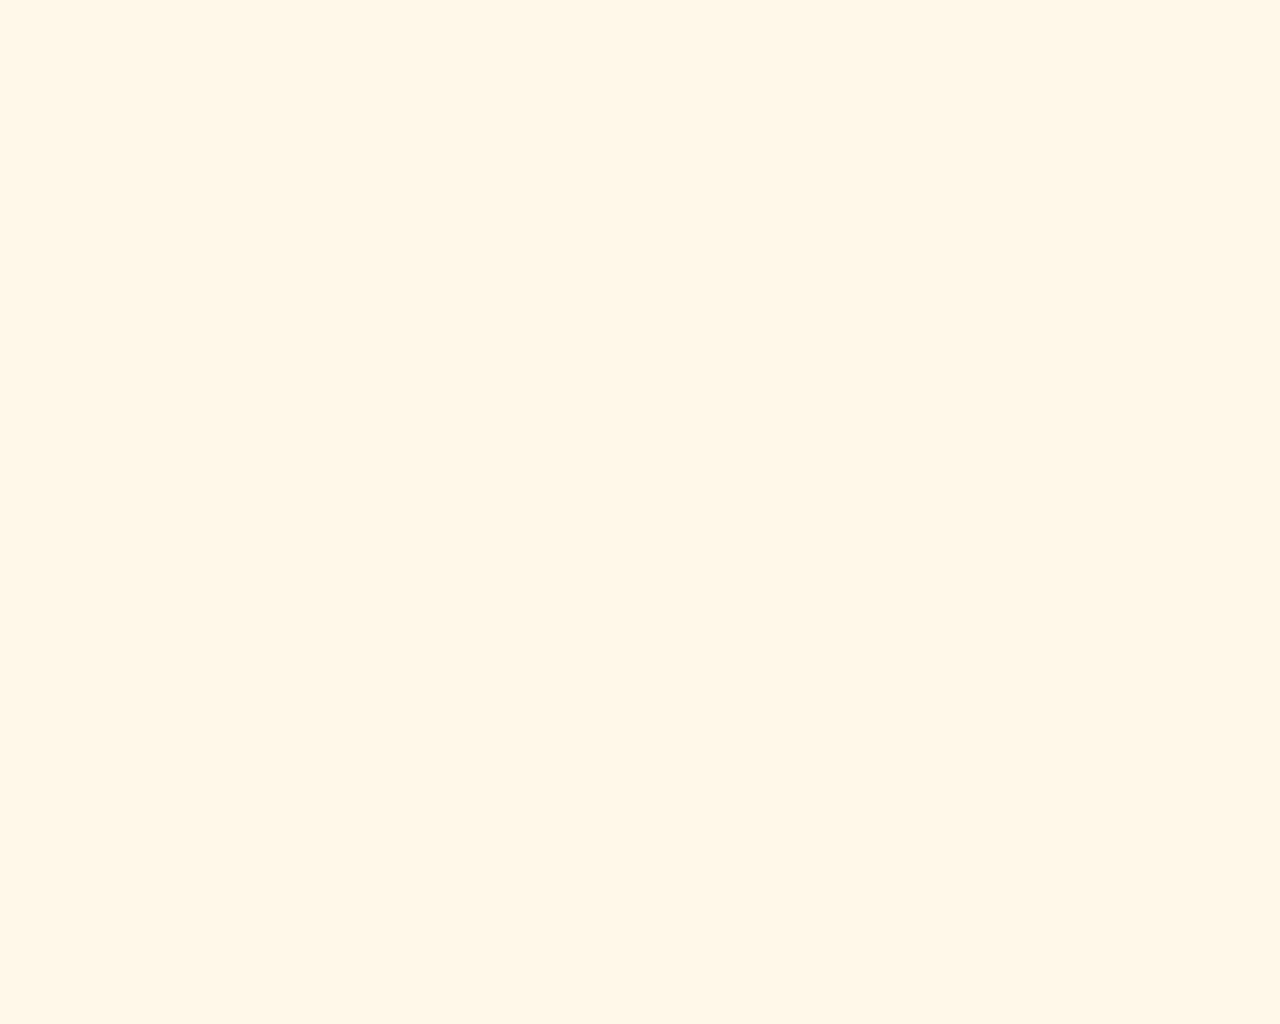 1280x1024 Cosmic Latte Solid Color Background